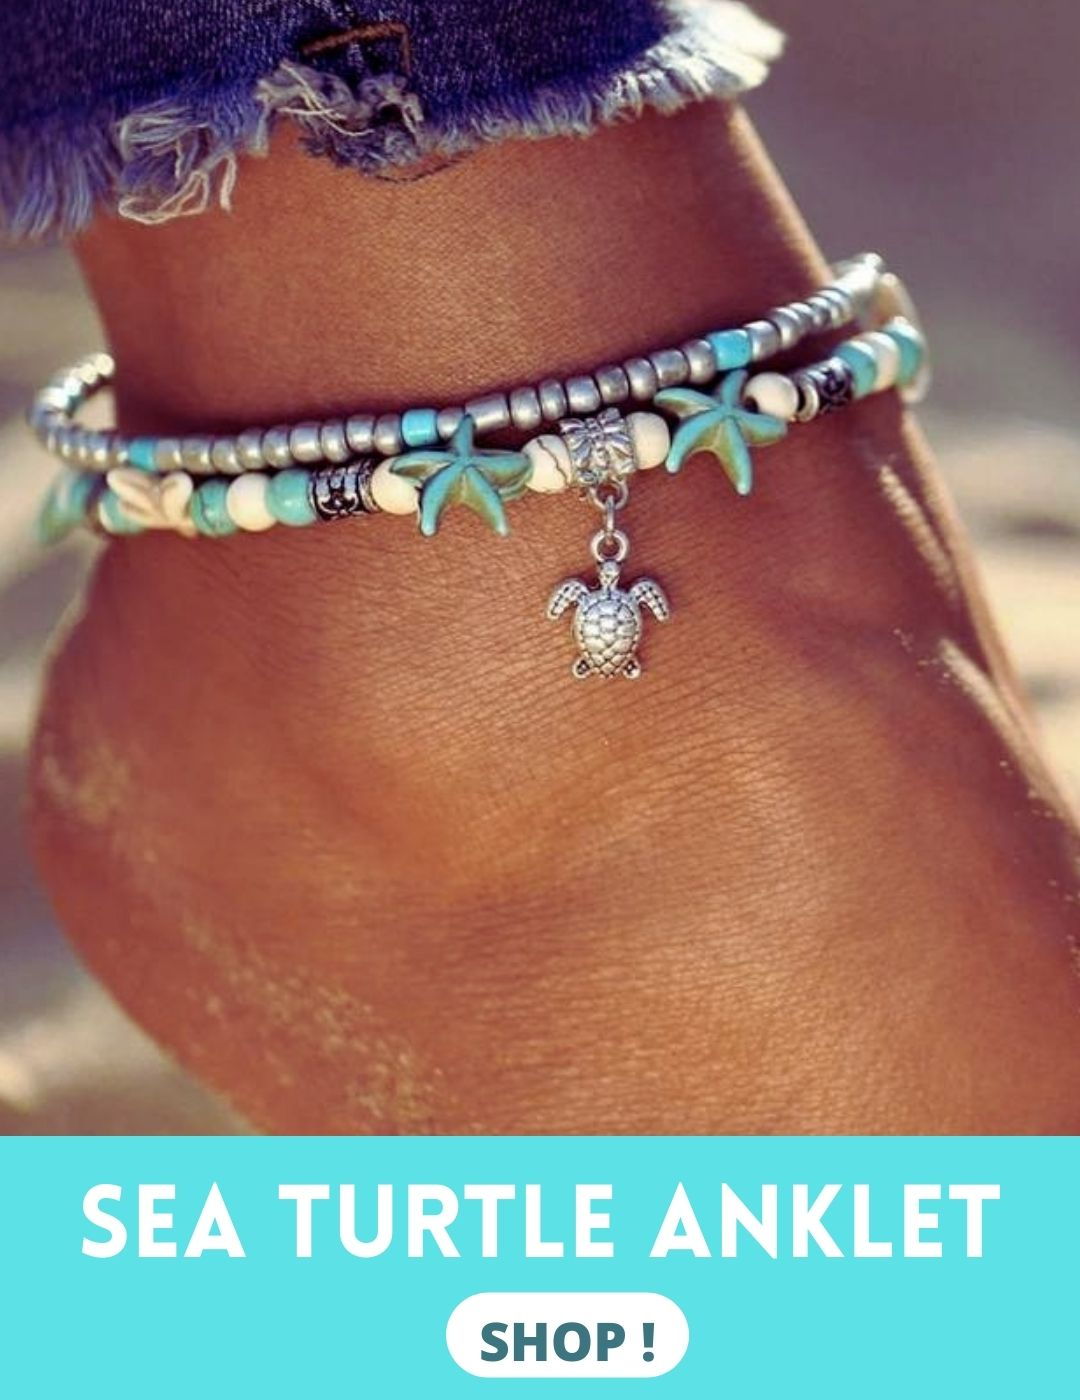 Sea turtles are endangered facts